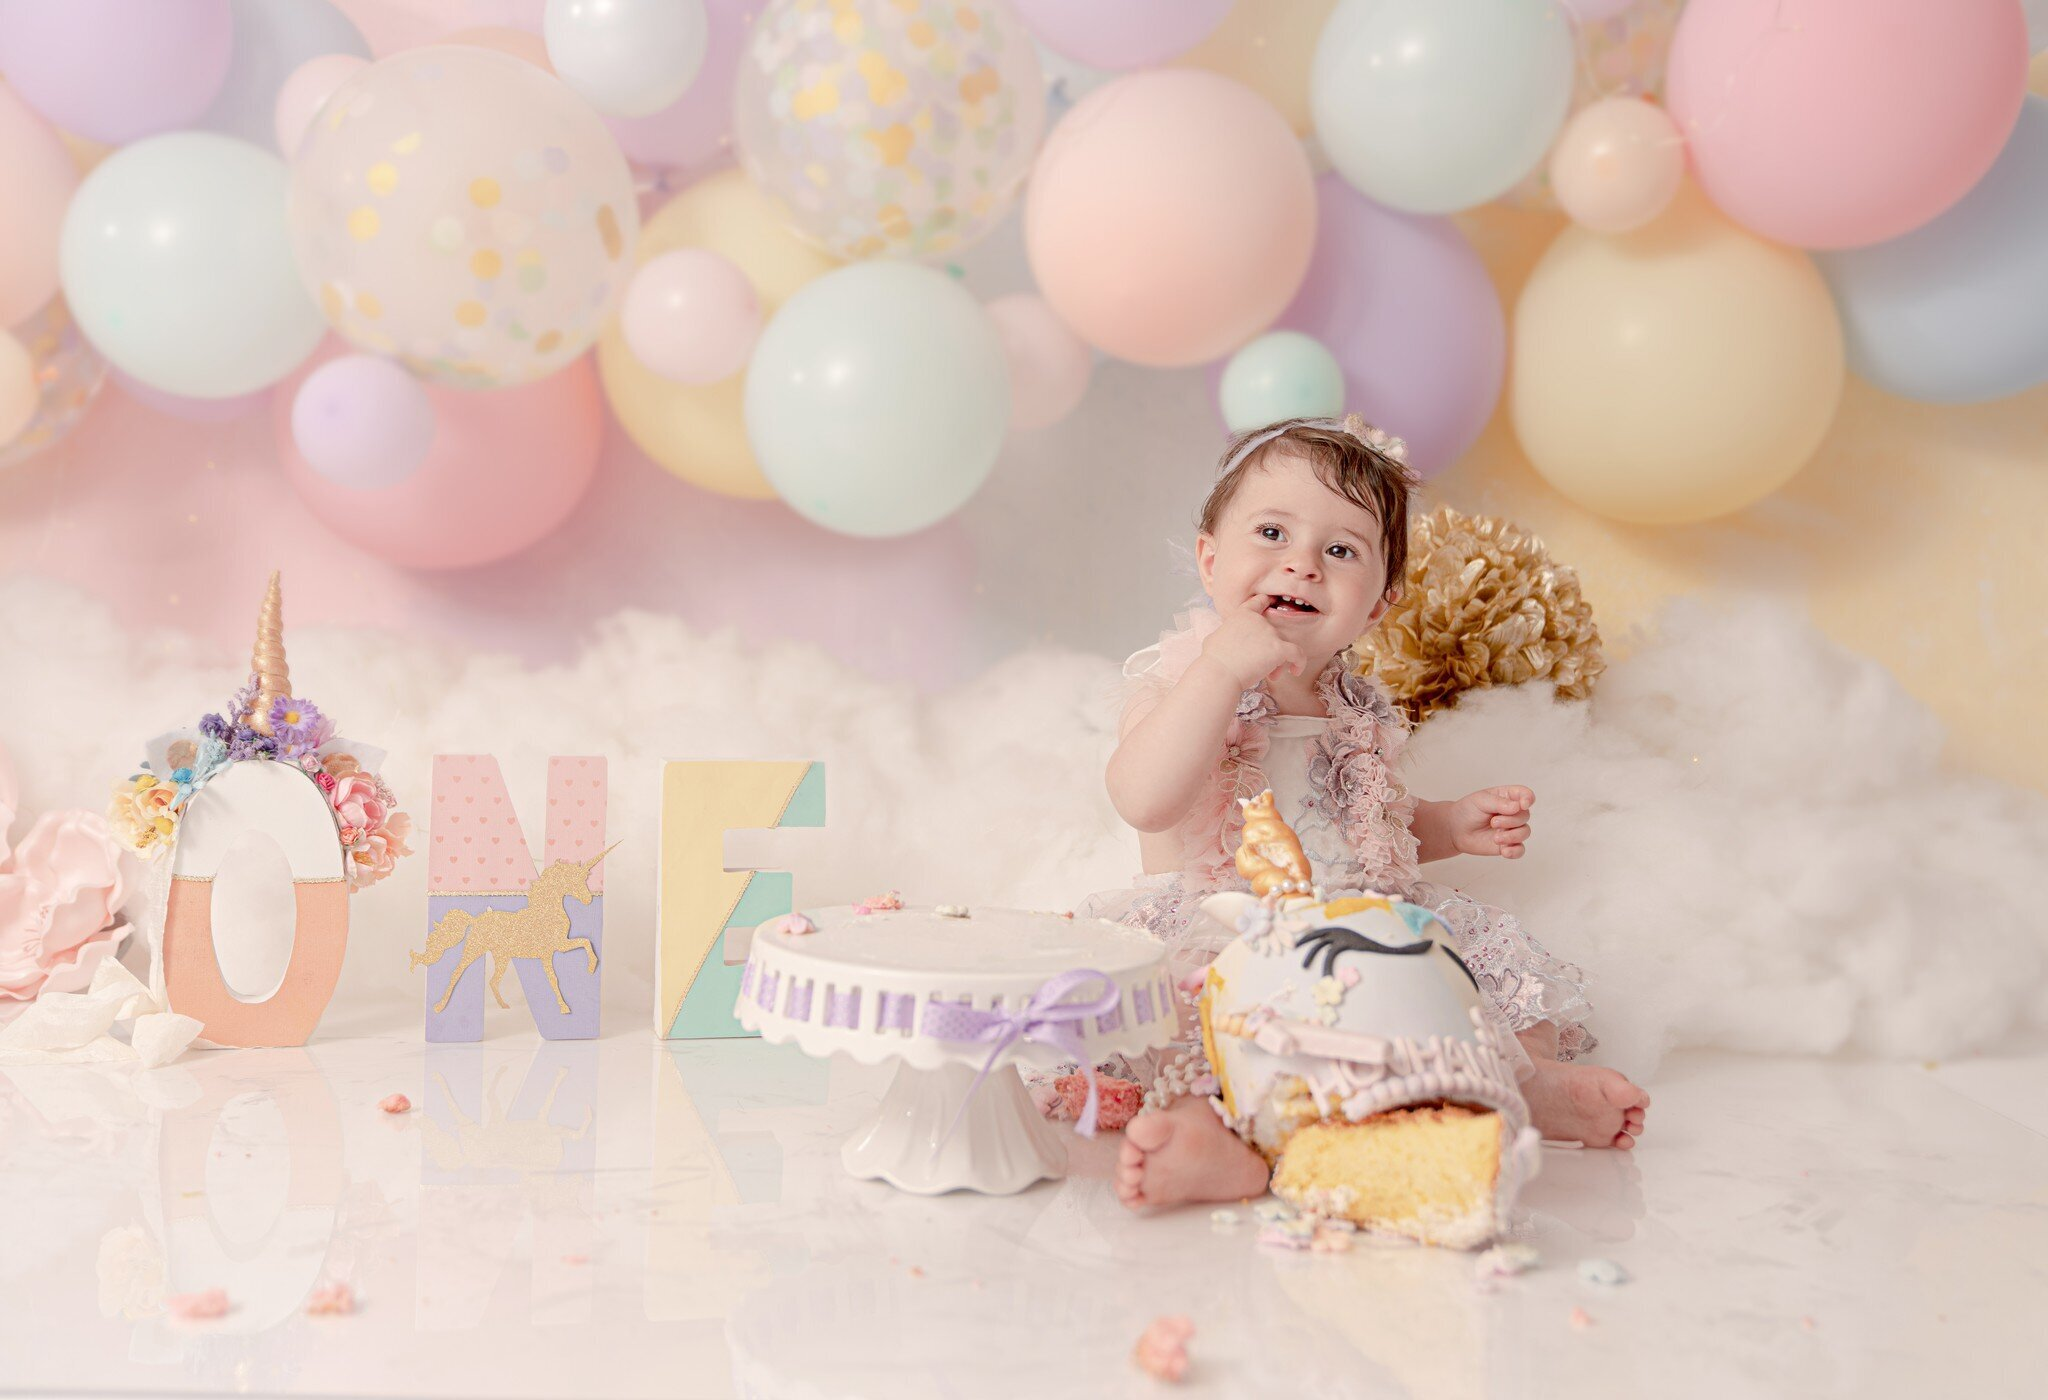 Little girl photoshoot with color balloons and a big cake